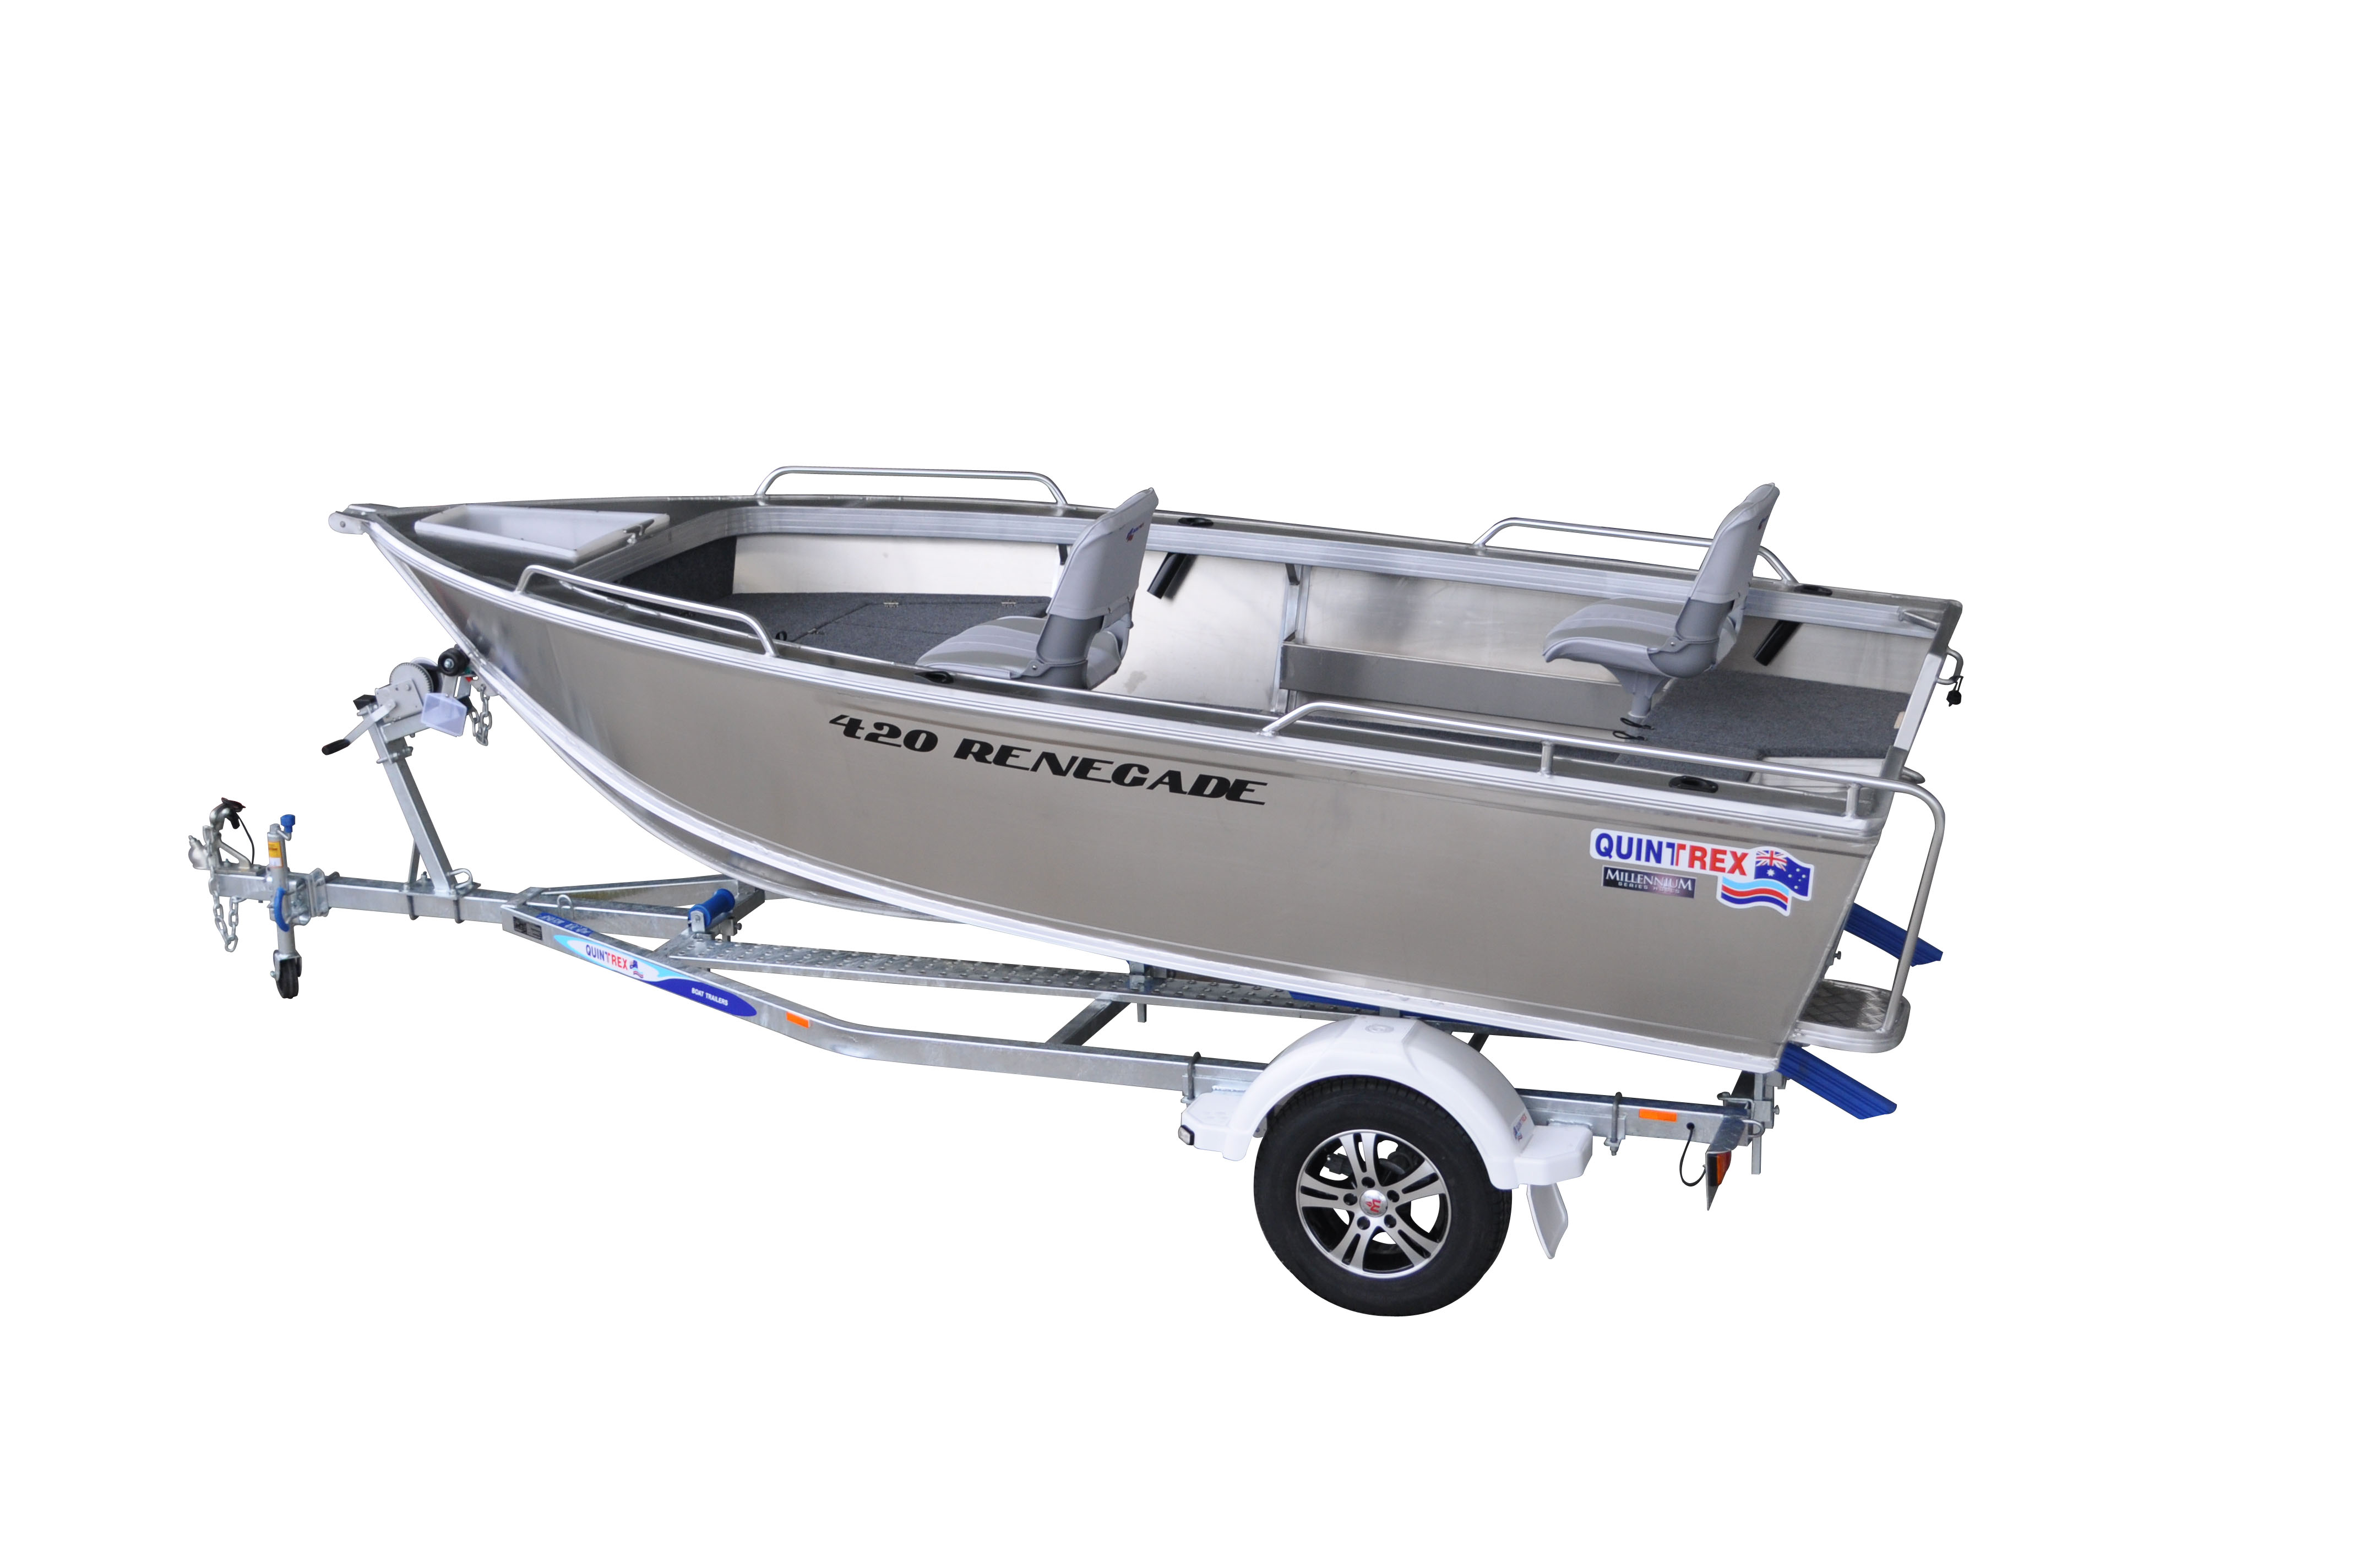 NEW 2018 QUINTREX 420 RENEGADE SC SPORTS WITH EVINRUDE 50HP